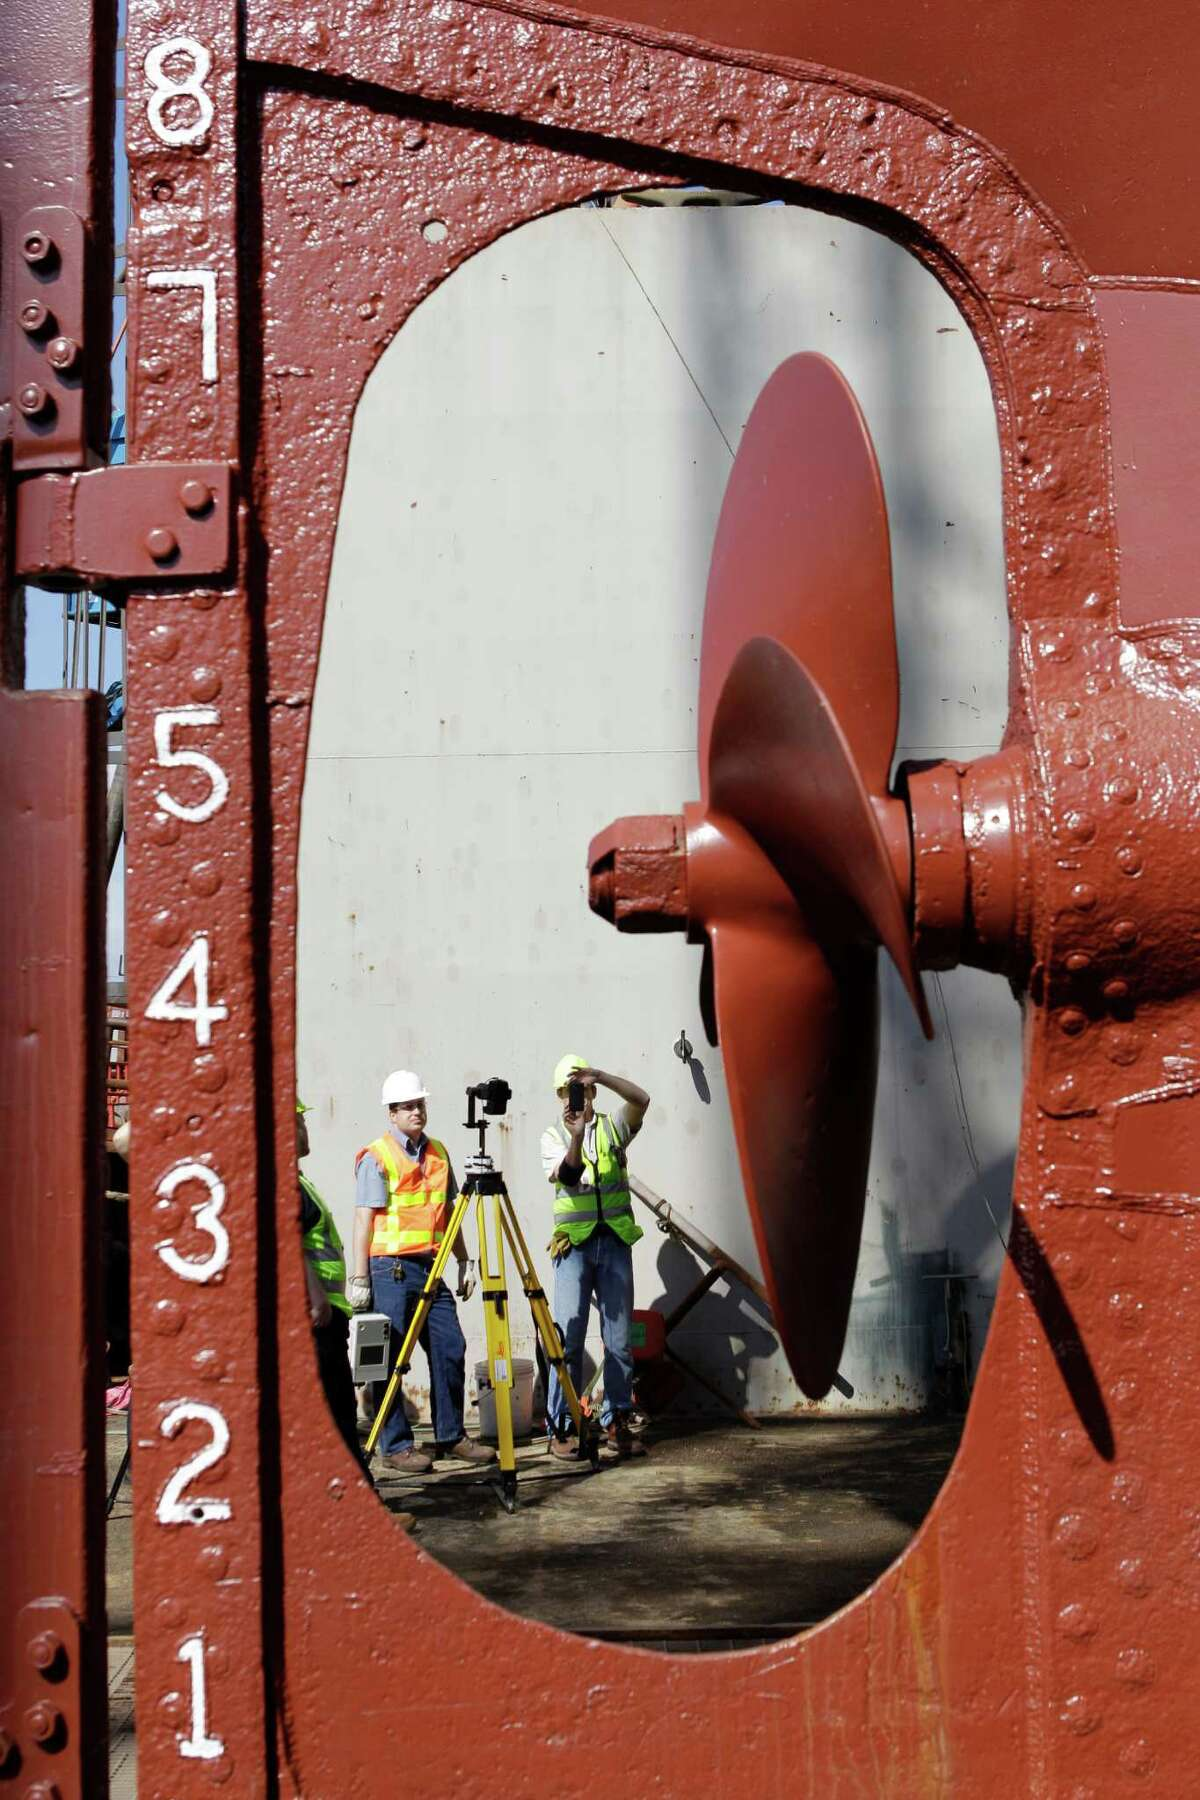 Shown through the propeller, Travis Davis, left, and Richard Lasater photograph the Elissa as part of the 3D process.